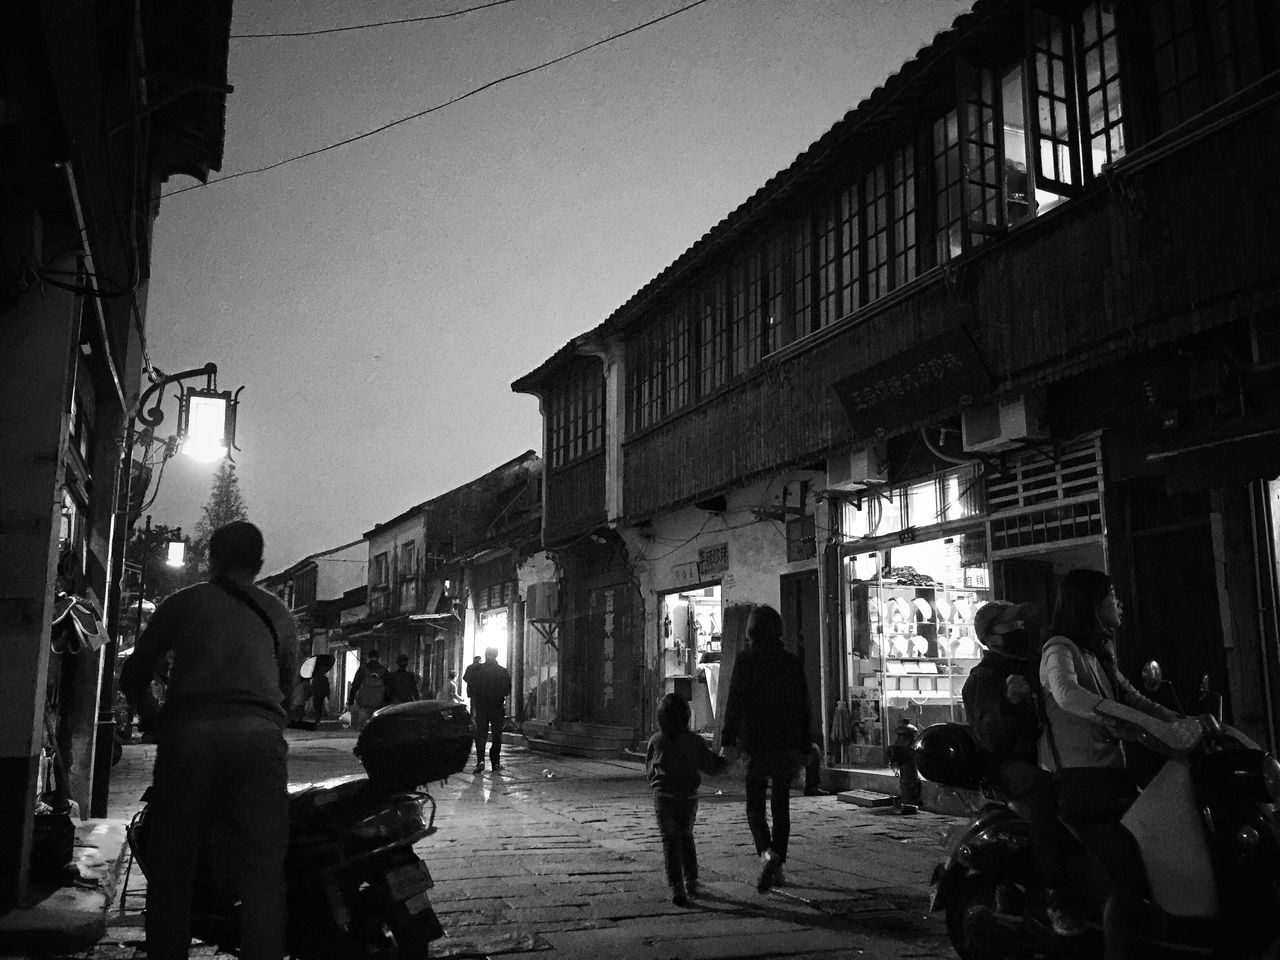 Built Structure Real People Street Outdoors Night Eye4photography  Blackandwhite EyeEm Taiwan Still Life Daily Life EyeEm Gallery My Black & White Photography Bnw_life Night Lights Night View Street Photo Streetphotography Bnw